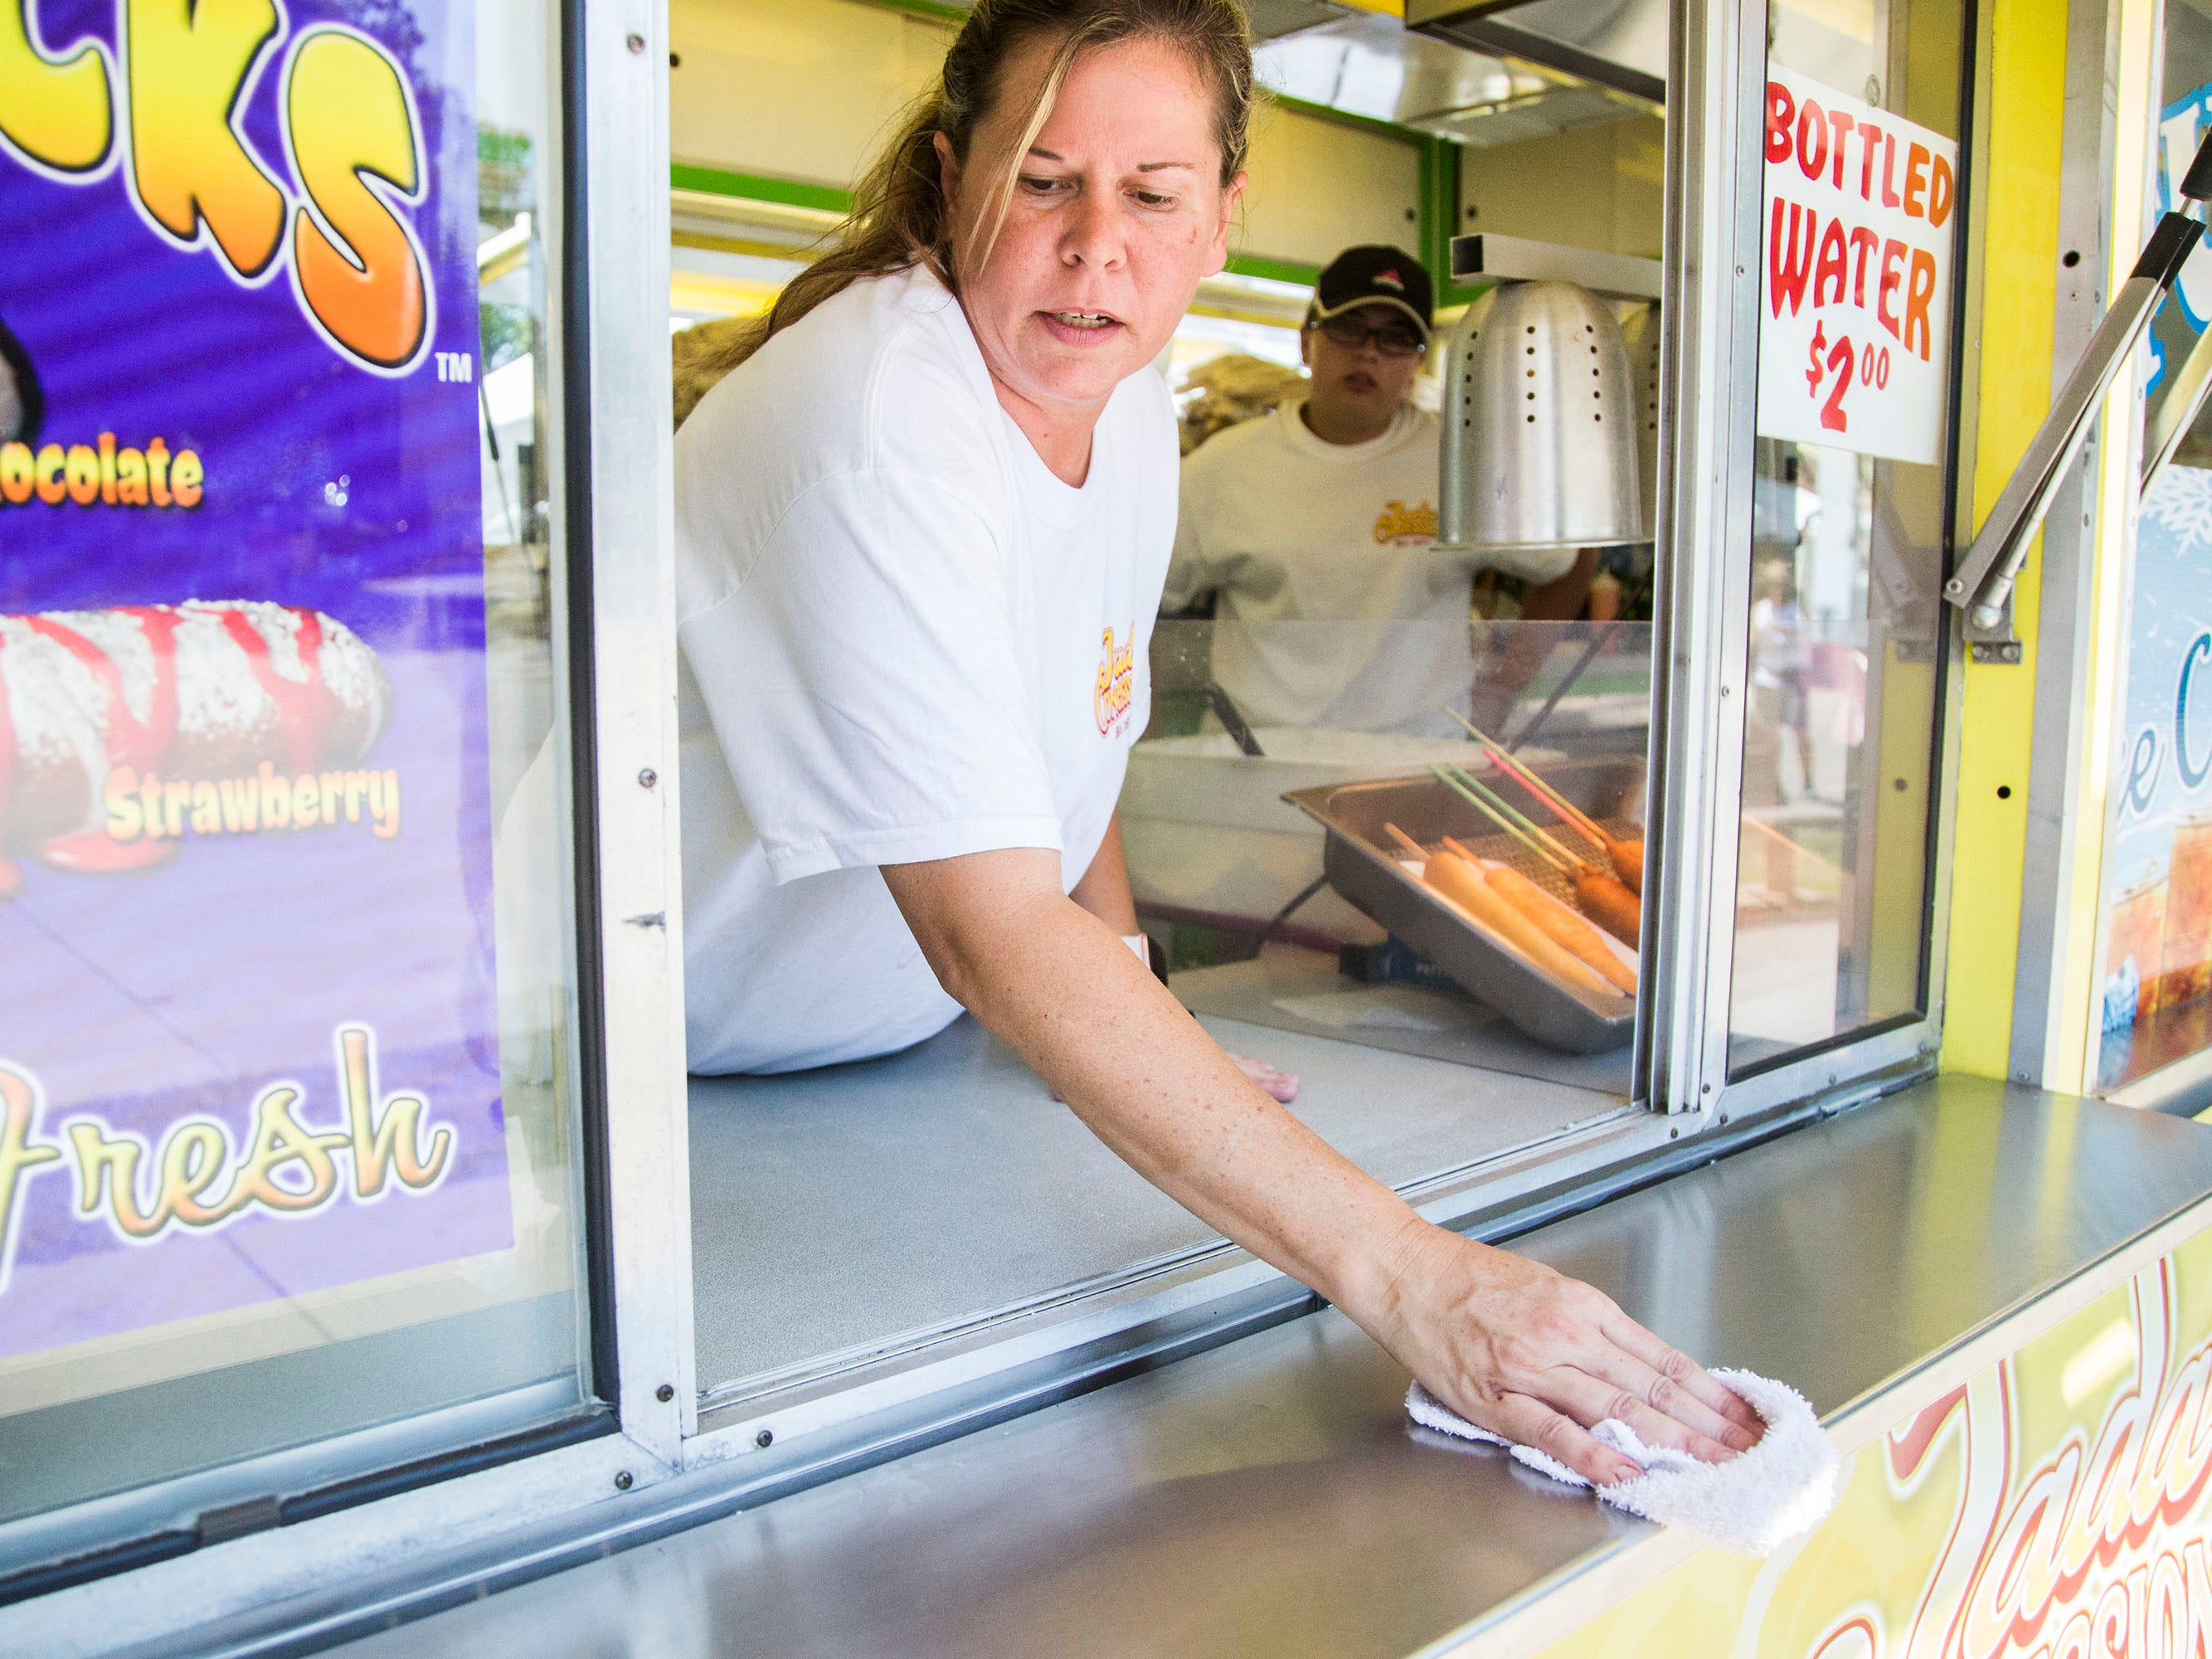 During a lull in activity, Jada Blewer, owner of Jada Concessions, wipes a counter in her funnel cake concession stand on Thursday, Aug. 9, 2018, at the Iowa State Fair.